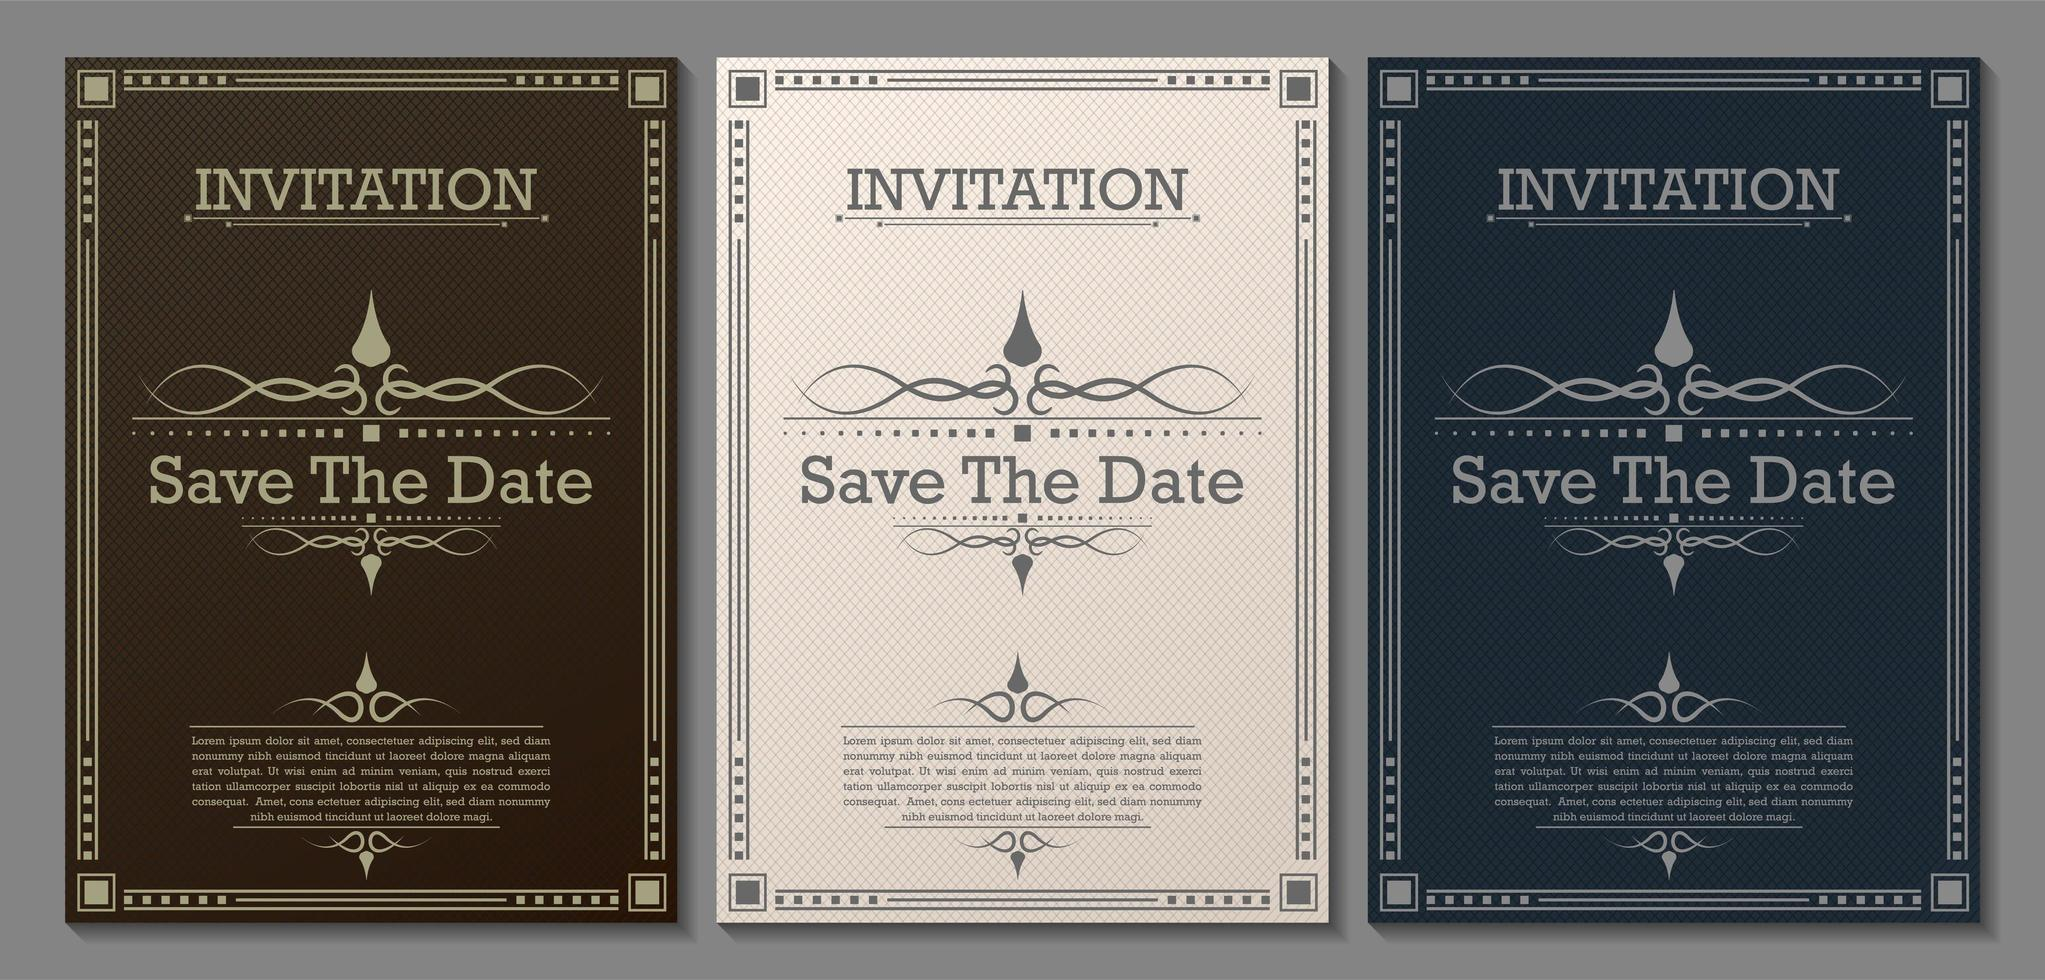 Luxury vintage save the date invitation templates vector